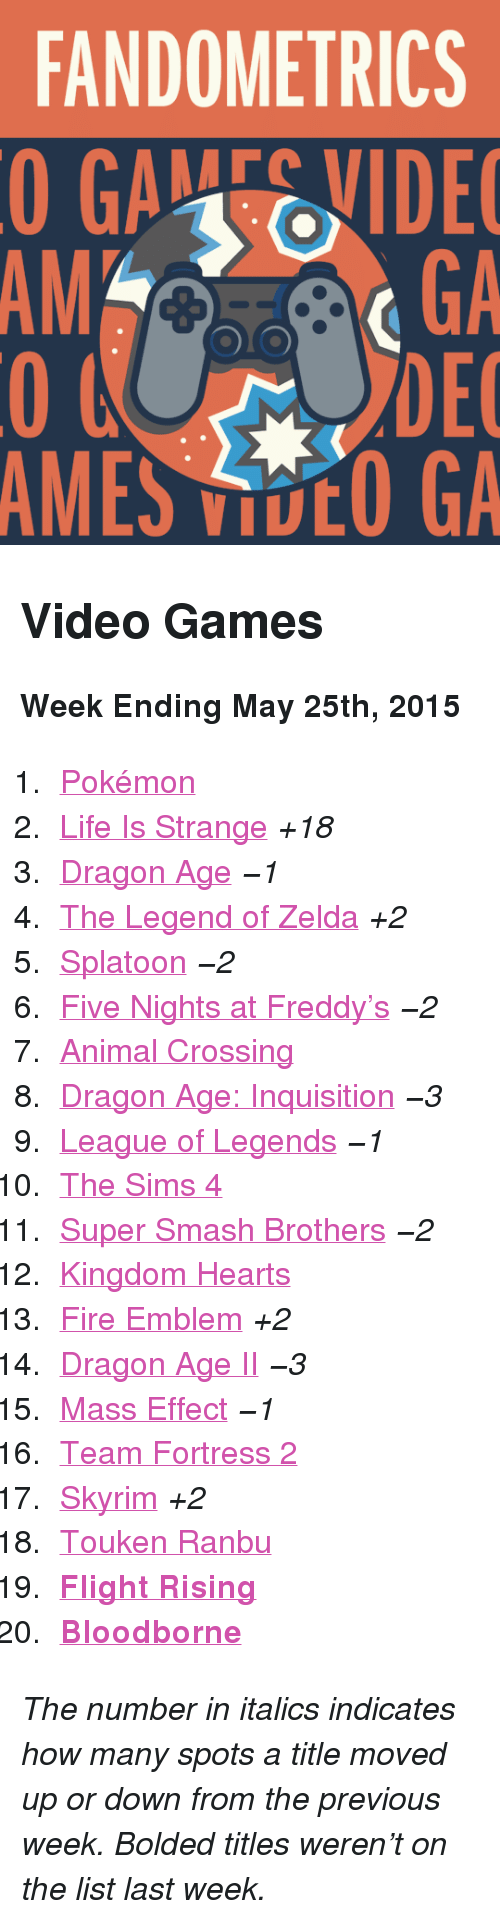 "Five Nights: FANDOMETRICS  GAEVIDE  GA  DEC  AMES VOO GA  AM <h2>Video Games</h2><p><b>Week Ending May 25th, 2015</b></p><ol><li><a href=""http://www.tumblr.com/search/pokemon"">Pokémon</a></li>  <li><a href=""http://www.tumblr.com/search/life%20is%20strange"">Life Is Strange</a> <i>+18</i></li>  <li><a href=""http://www.tumblr.com/search/dragon%20age"">Dragon Age</a> <i>−1</i></li>  <li><a href=""http://www.tumblr.com/search/legend%20of%20zelda"">The Legend of Zelda</a> <i>+2</i></li>  <li><a href=""http://www.tumblr.com/search/splatoon"">Splatoon</a> <i>−2</i></li>  <li><a href=""http://www.tumblr.com/search/five%20nights%20at%20freddy's"">Five Nights at Freddy&rsquo;s</a> <i>−2</i></li>  <li><a href=""http://www.tumblr.com/search/acnl"">Animal Crossing</a></li>  <li><a href=""http://www.tumblr.com/search/dragon%20age%20inquisition"">Dragon Age: Inquisition</a> <i>−3</i></li>  <li><a href=""http://www.tumblr.com/search/league%20of%20legends"">League of Legends</a> <i>−1</i></li>  <li><a href=""http://www.tumblr.com/search/sims%204"">The Sims 4</a></li>  <li><a href=""http://www.tumblr.com/search/super%20smash%20bros"">Super Smash Brothers</a> <i>−2</i></li>  <li><a href=""http://www.tumblr.com/search/kingdom%20hearts"">Kingdom Hearts</a></li>  <li><a href=""http://www.tumblr.com/search/fire%20emblem"">Fire Emblem</a> <i>+2</i></li>  <li><a href=""http://www.tumblr.com/search/dragon%20age%202"">Dragon Age II</a> <i>−3</i></li>  <li><a href=""http://www.tumblr.com/search/mass%20effect"">Mass Effect</a> <i>−1</i></li>  <li><a href=""http://www.tumblr.com/search/tf2"">Team Fortress 2</a></li>  <li><a href=""http://www.tumblr.com/search/skyrim"">Skyrim</a> <i>+2</i></li>  <li><a href=""http://www.tumblr.com/search/touken%20ranbu"">Touken Ranbu</a></li>  <li><a href=""http://www.tumblr.com/search/flight%20rising""><b>Flight Rising</b></a></li>  <li><a href=""http://www.tumblr.com/search/bloodborne""><b>Bloodborne</b></a></li></ol><p><i>The number in italics indicates how many spots a title moved up or down from the previous week. Bolded titles weren't on the list last week.</i></p>"